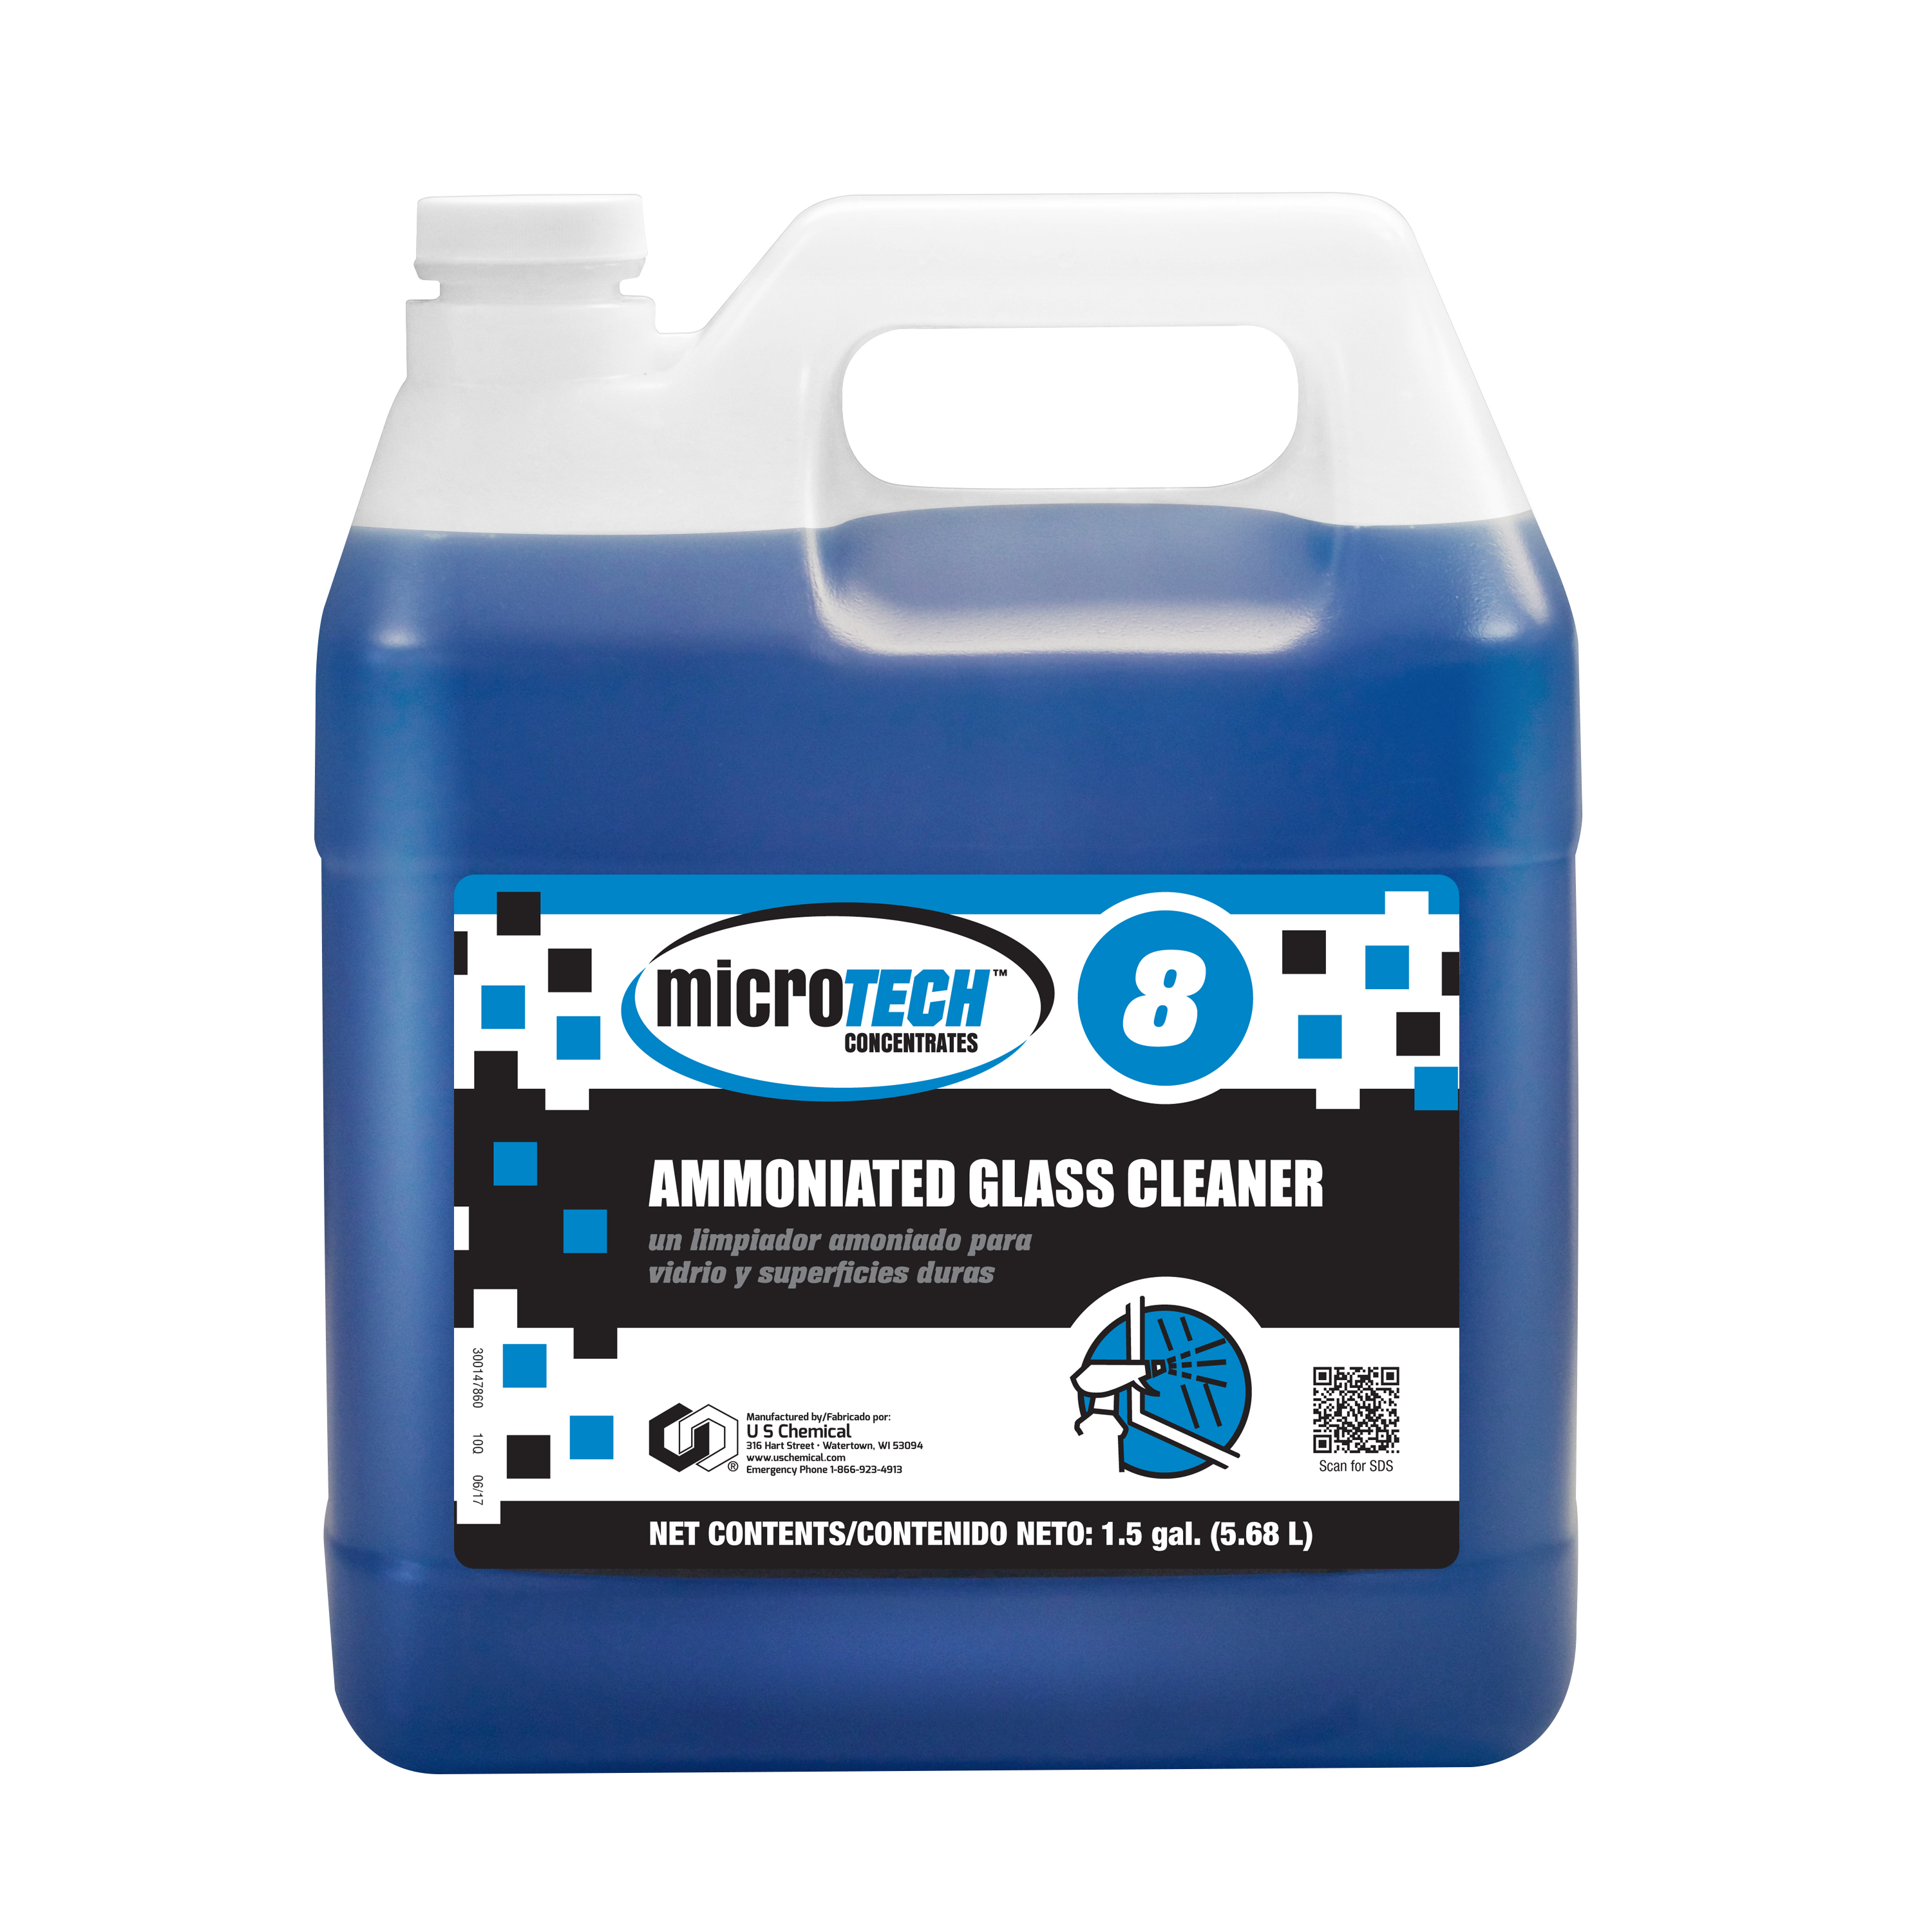 5374415_AMMONIATED_GLASS_CLEANER